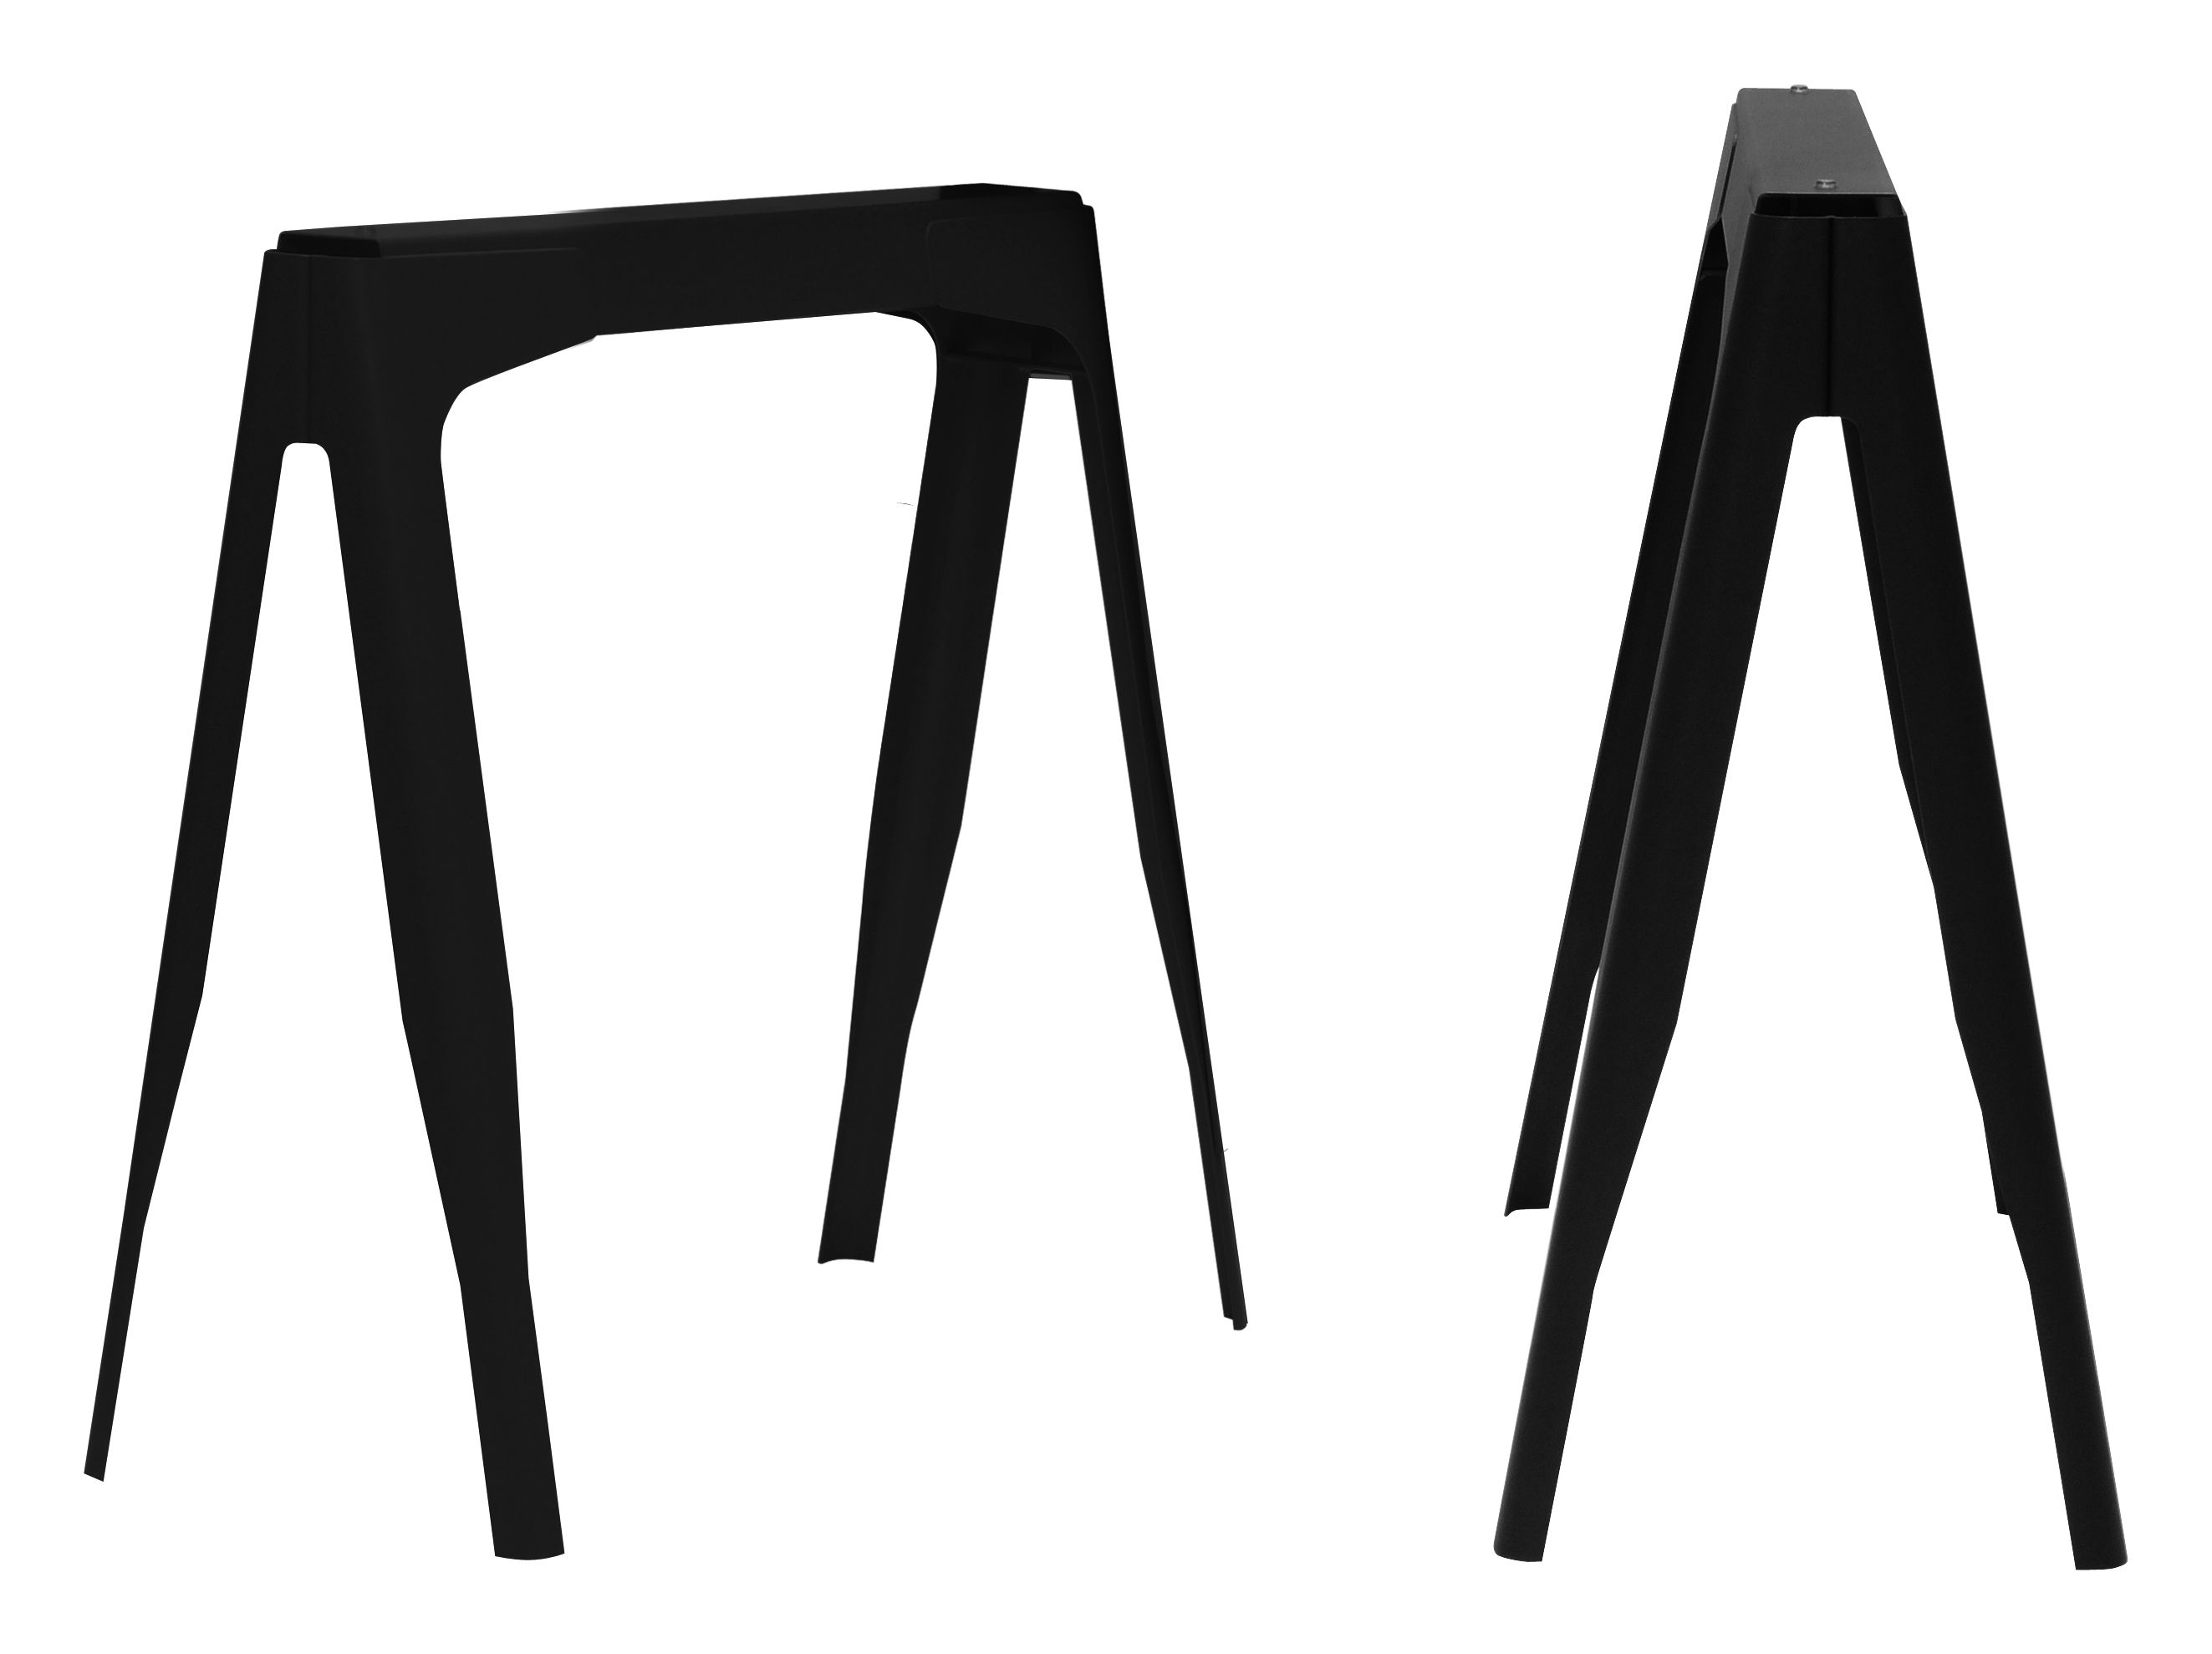 Furniture - Office Furniture - Y Pair of trestles - Lacquered steel - Set of 2 by Tolix - Glossy lacquered black - Lacquered steel